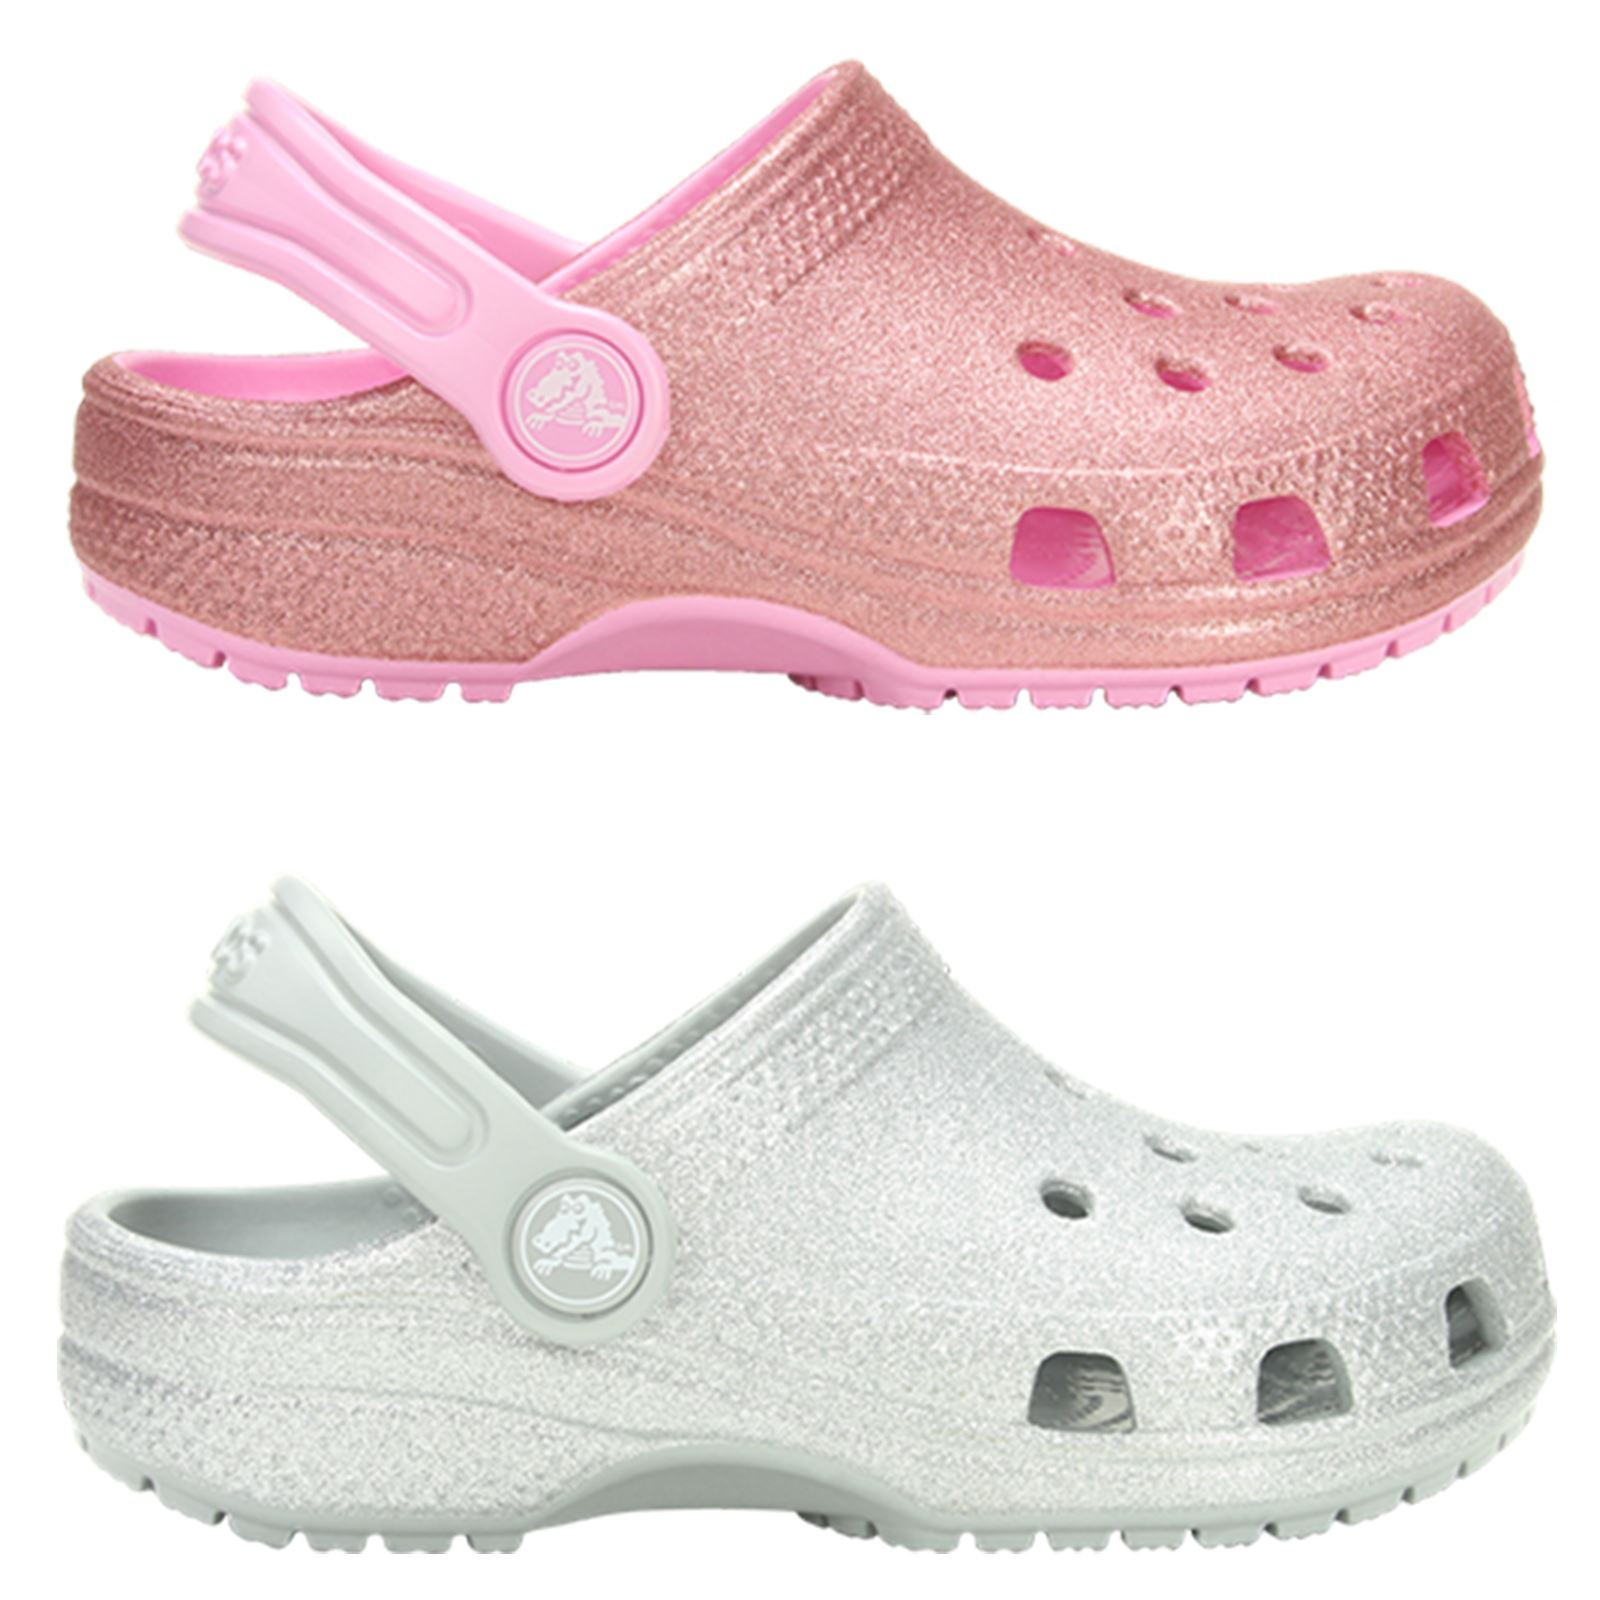 e6ccd085fb7 Crocs Classic Glitter Kids Roomy Fit Clog Shoes Sandals in Blossom Pink    Silver